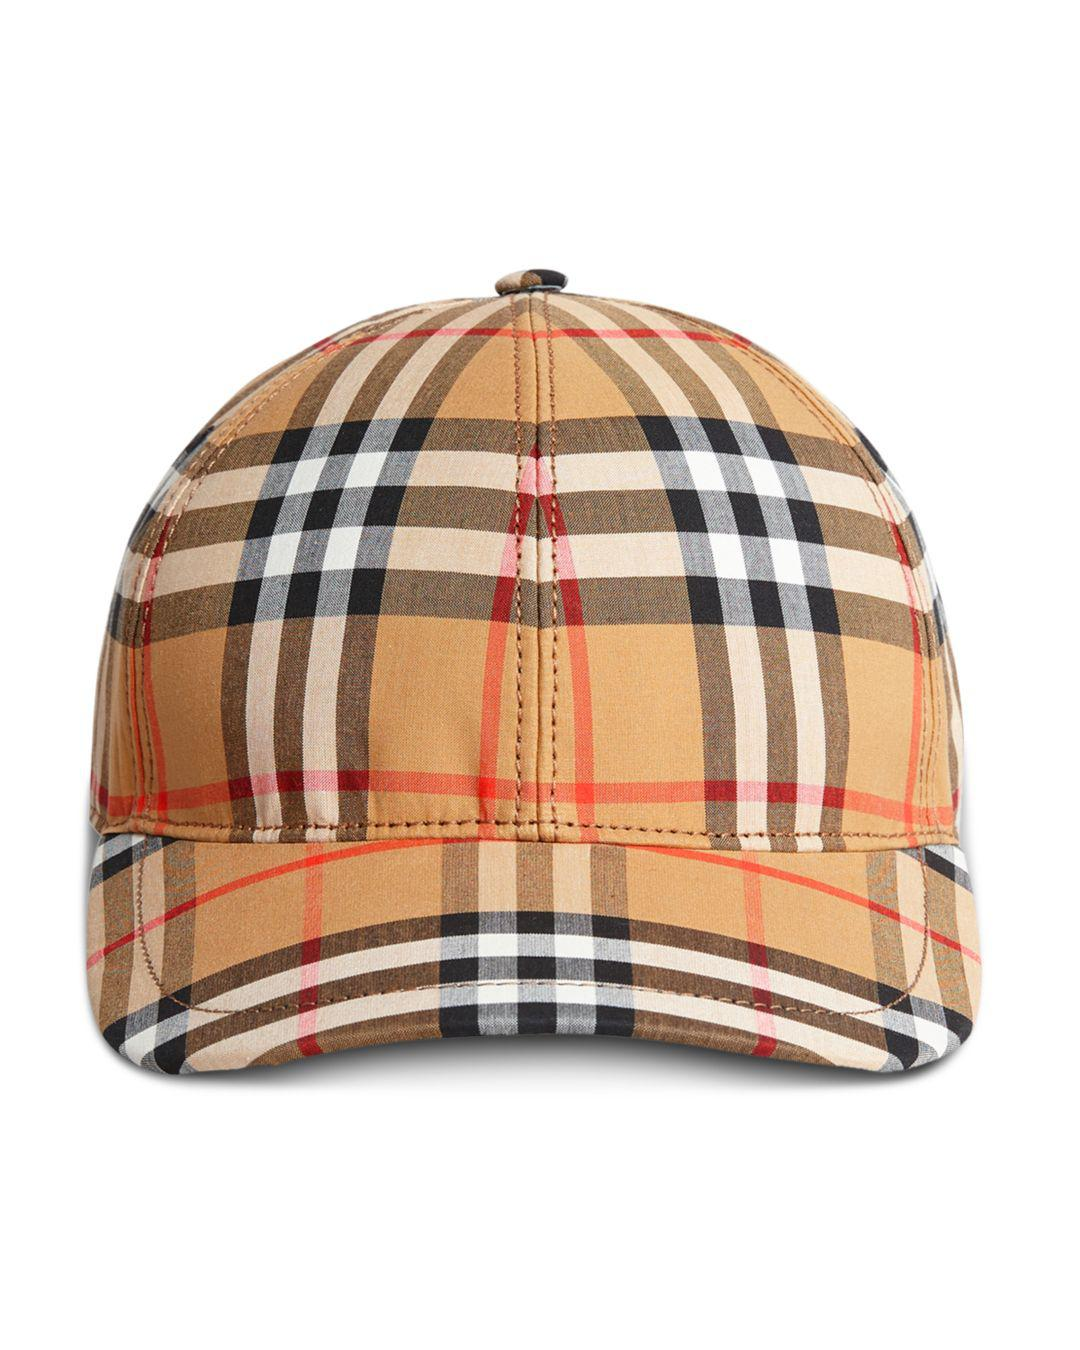 Lyst - Burberry Plaid Baseball Hat - Save 7% 5802781c5e3